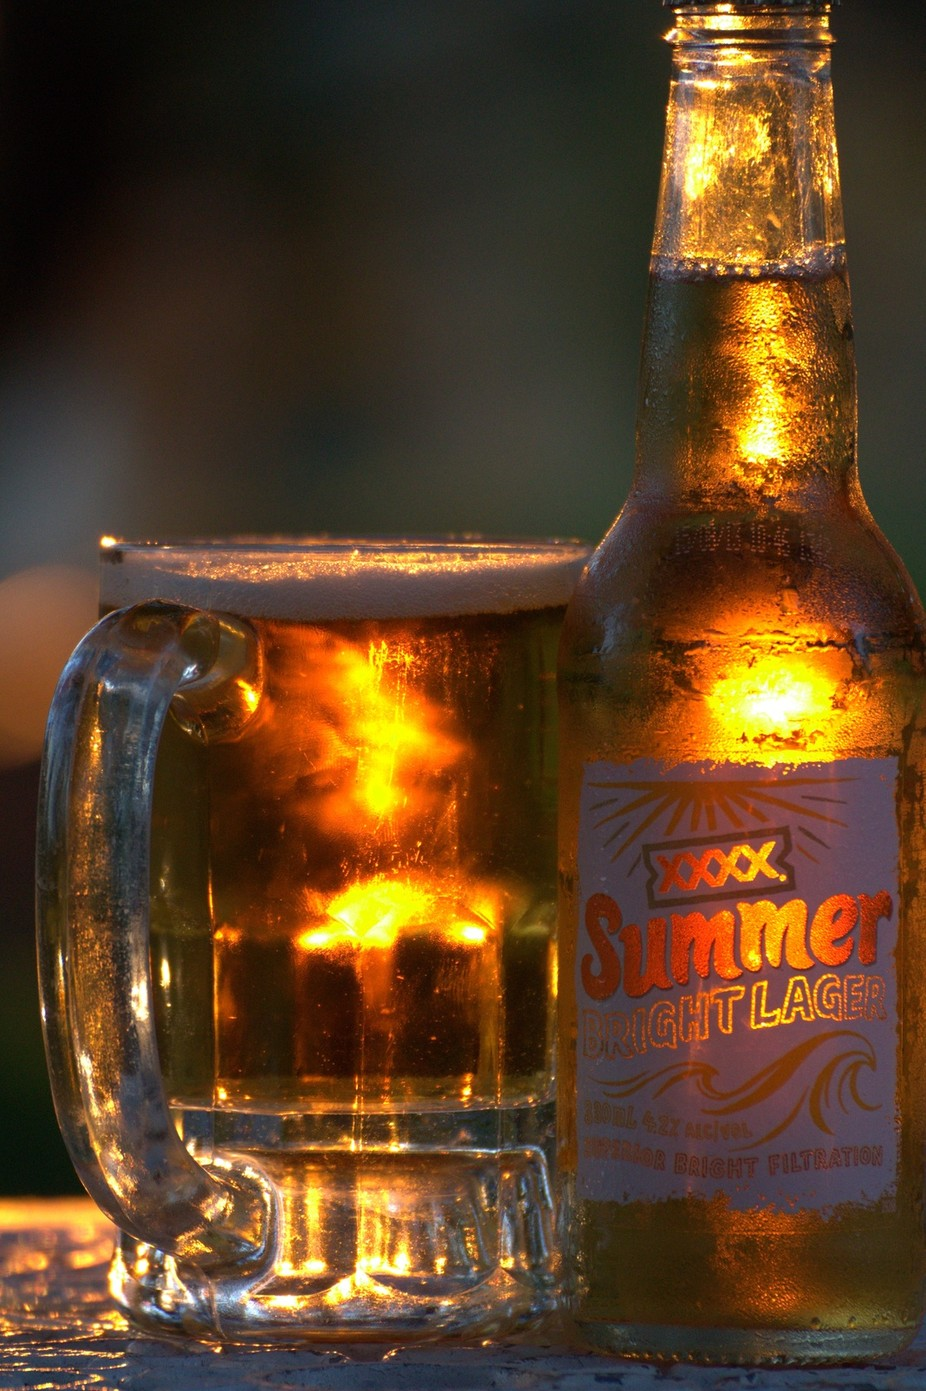 Beer glass at sunset